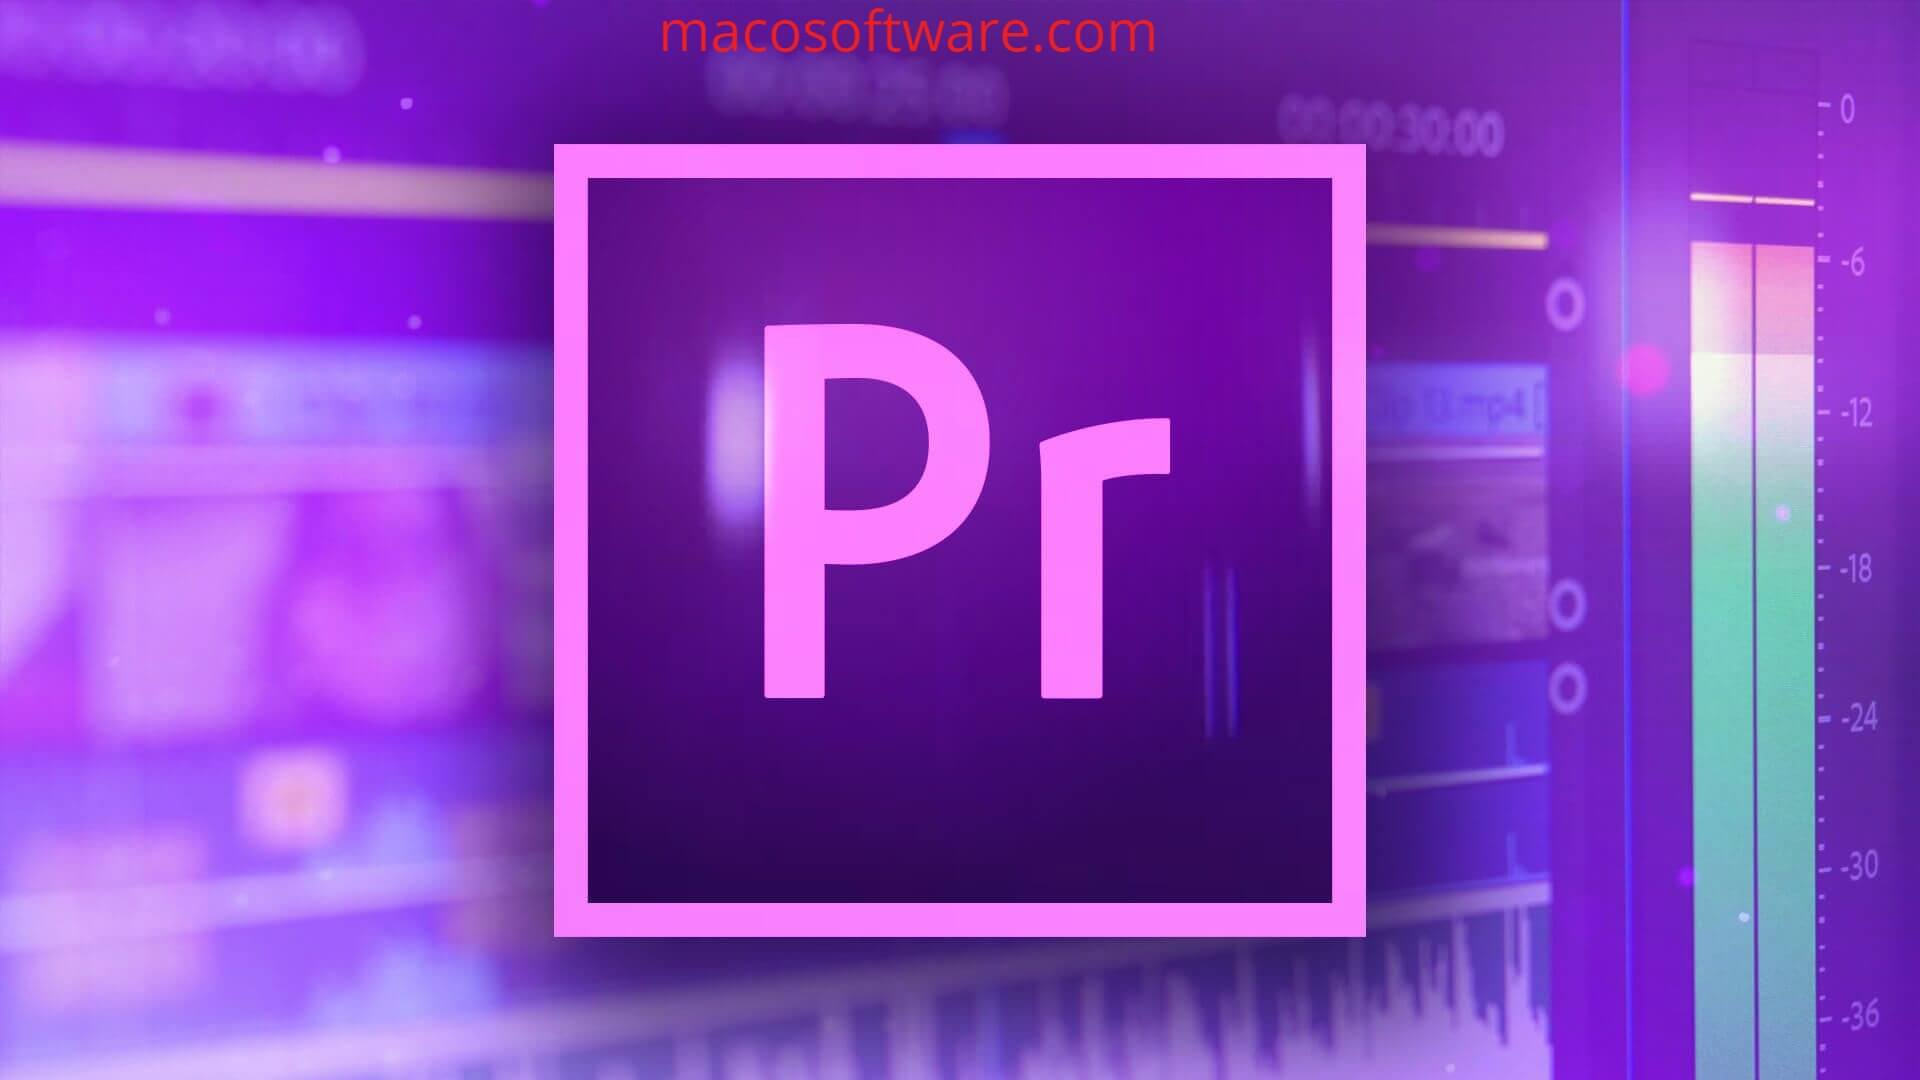 Adobe Premiere Pro V14.2.0.47 Crack With Activation Key 2020